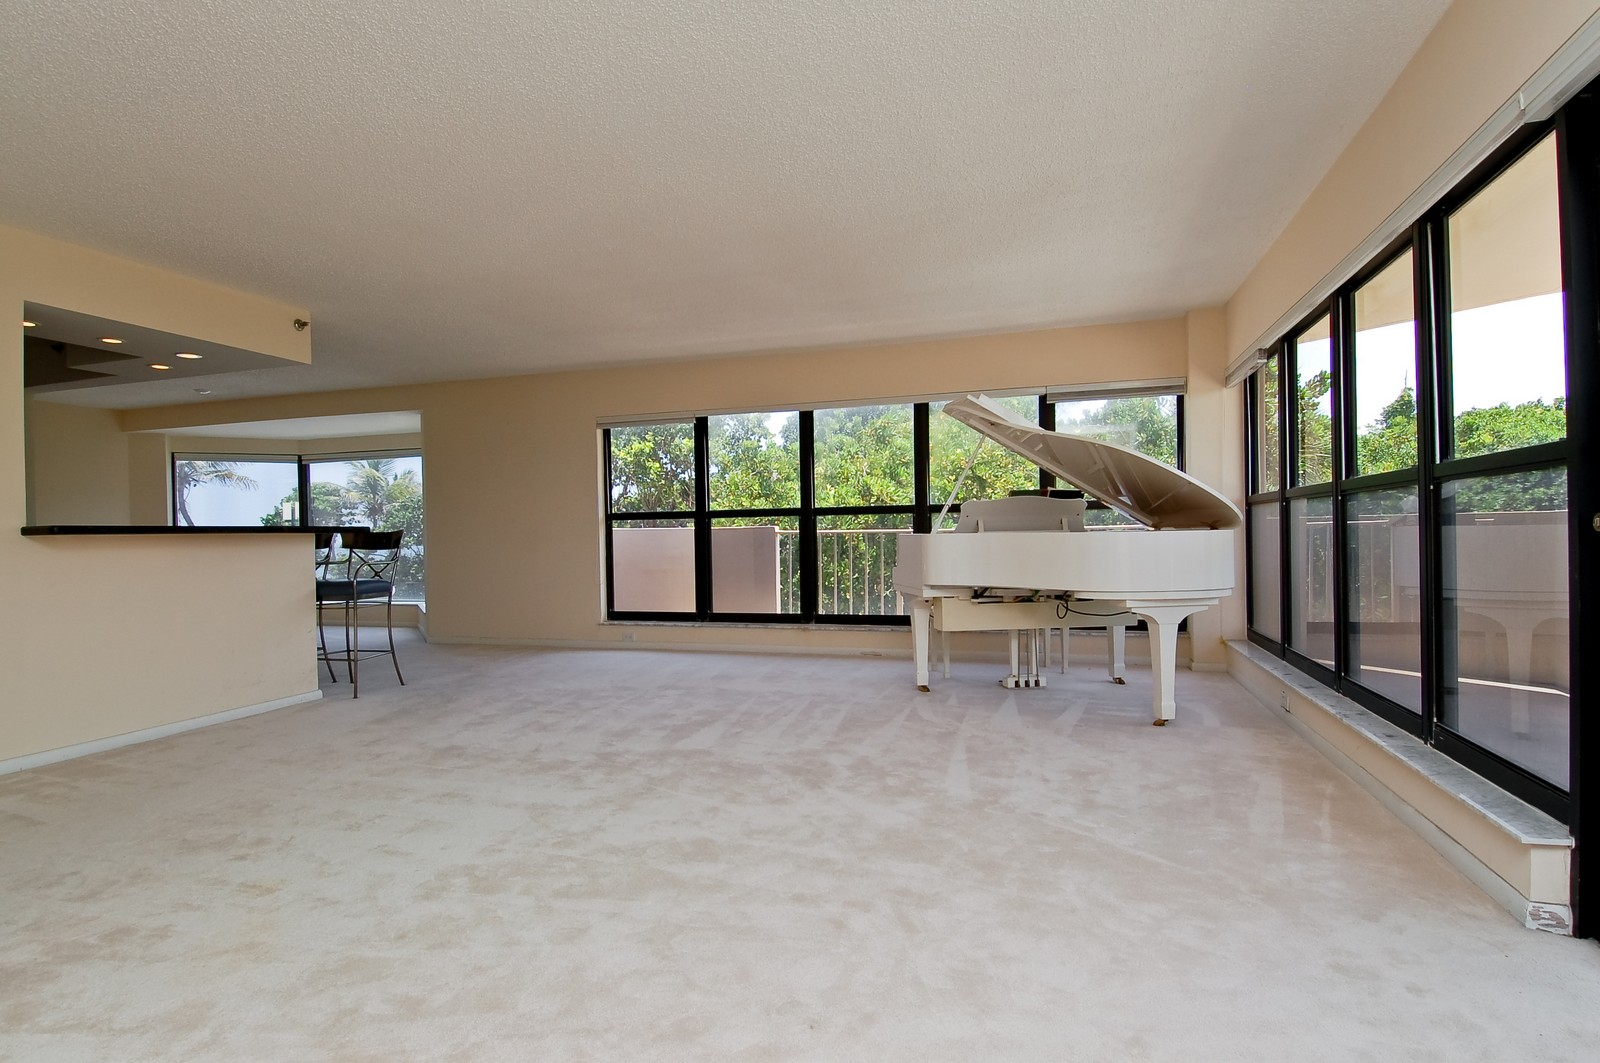 Real Estate Photography - 4605 S Ocean Blvd, Unit 3B, Highland Beach, FL, 33487 - Location 1